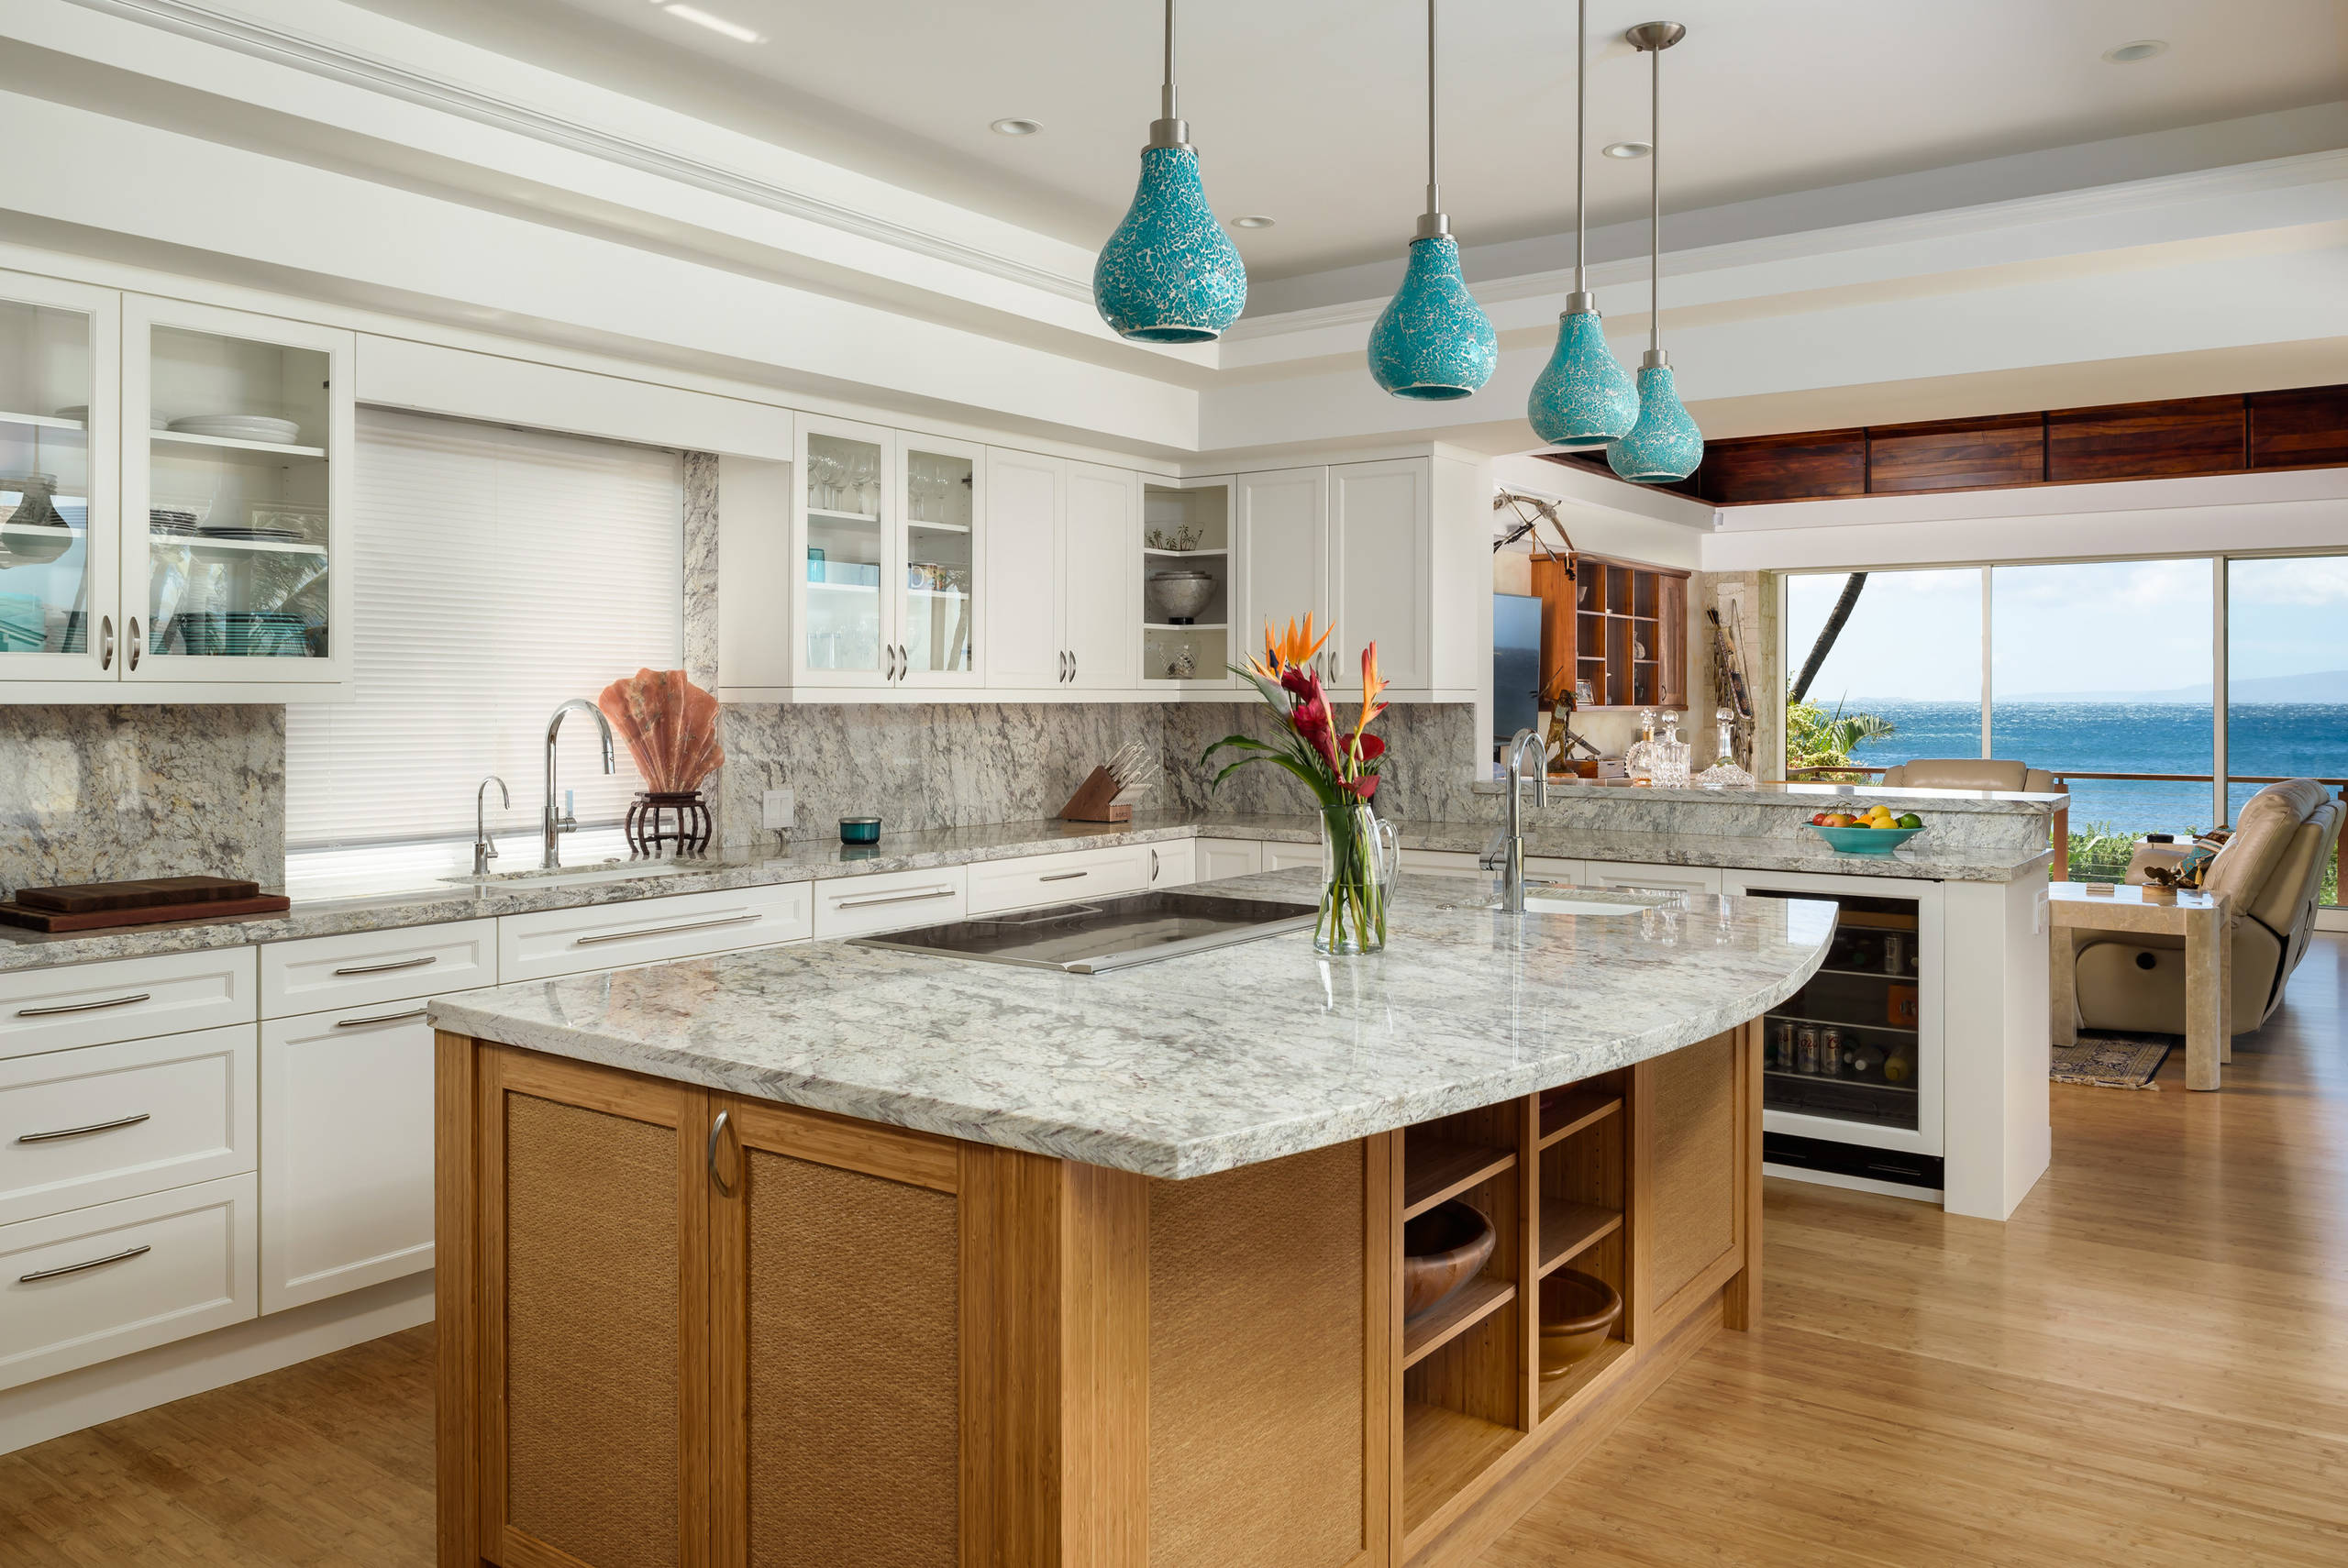 75 Beautiful Tropical Bamboo Floor Kitchen Pictures Ideas April 2021 Houzz